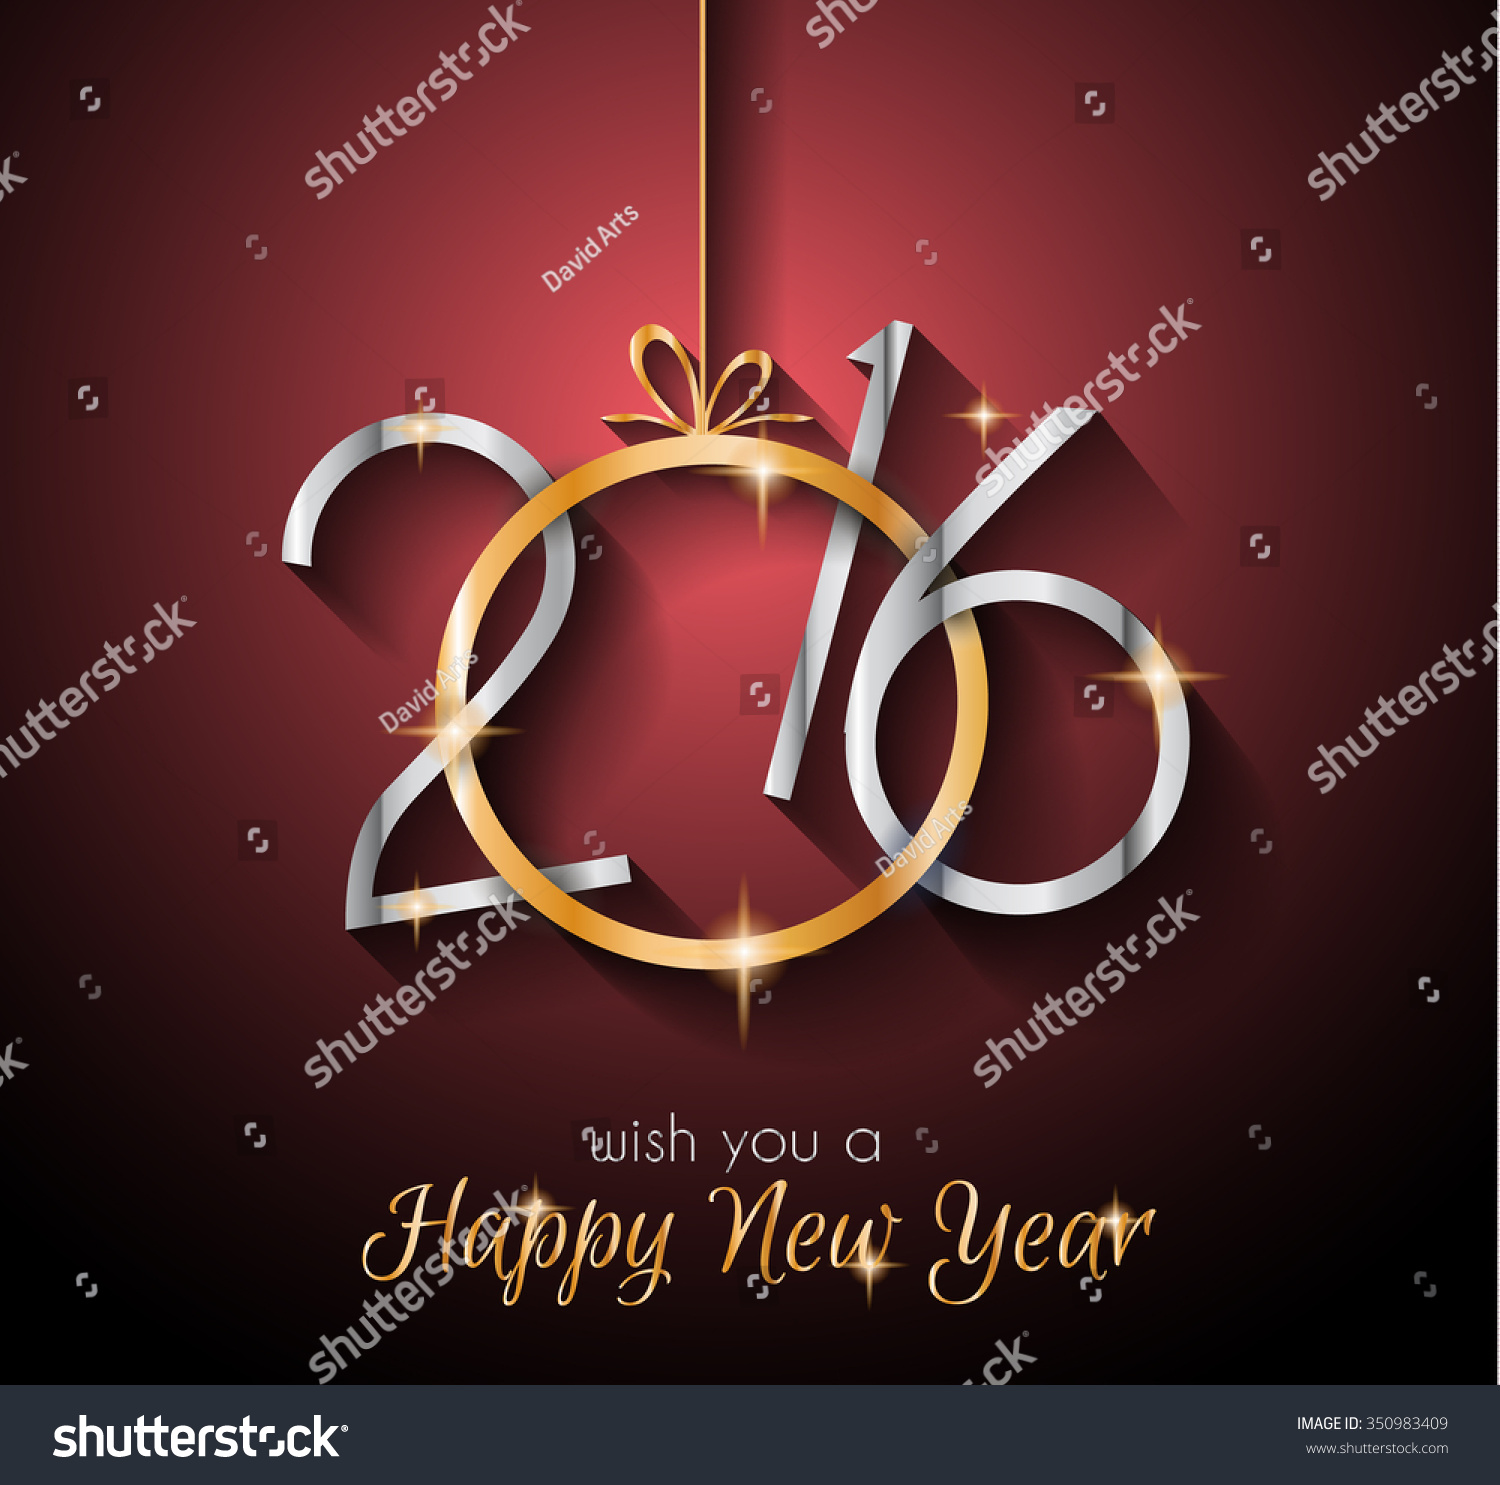 2016 happy new yearbackground for seasonal greetings cards parties